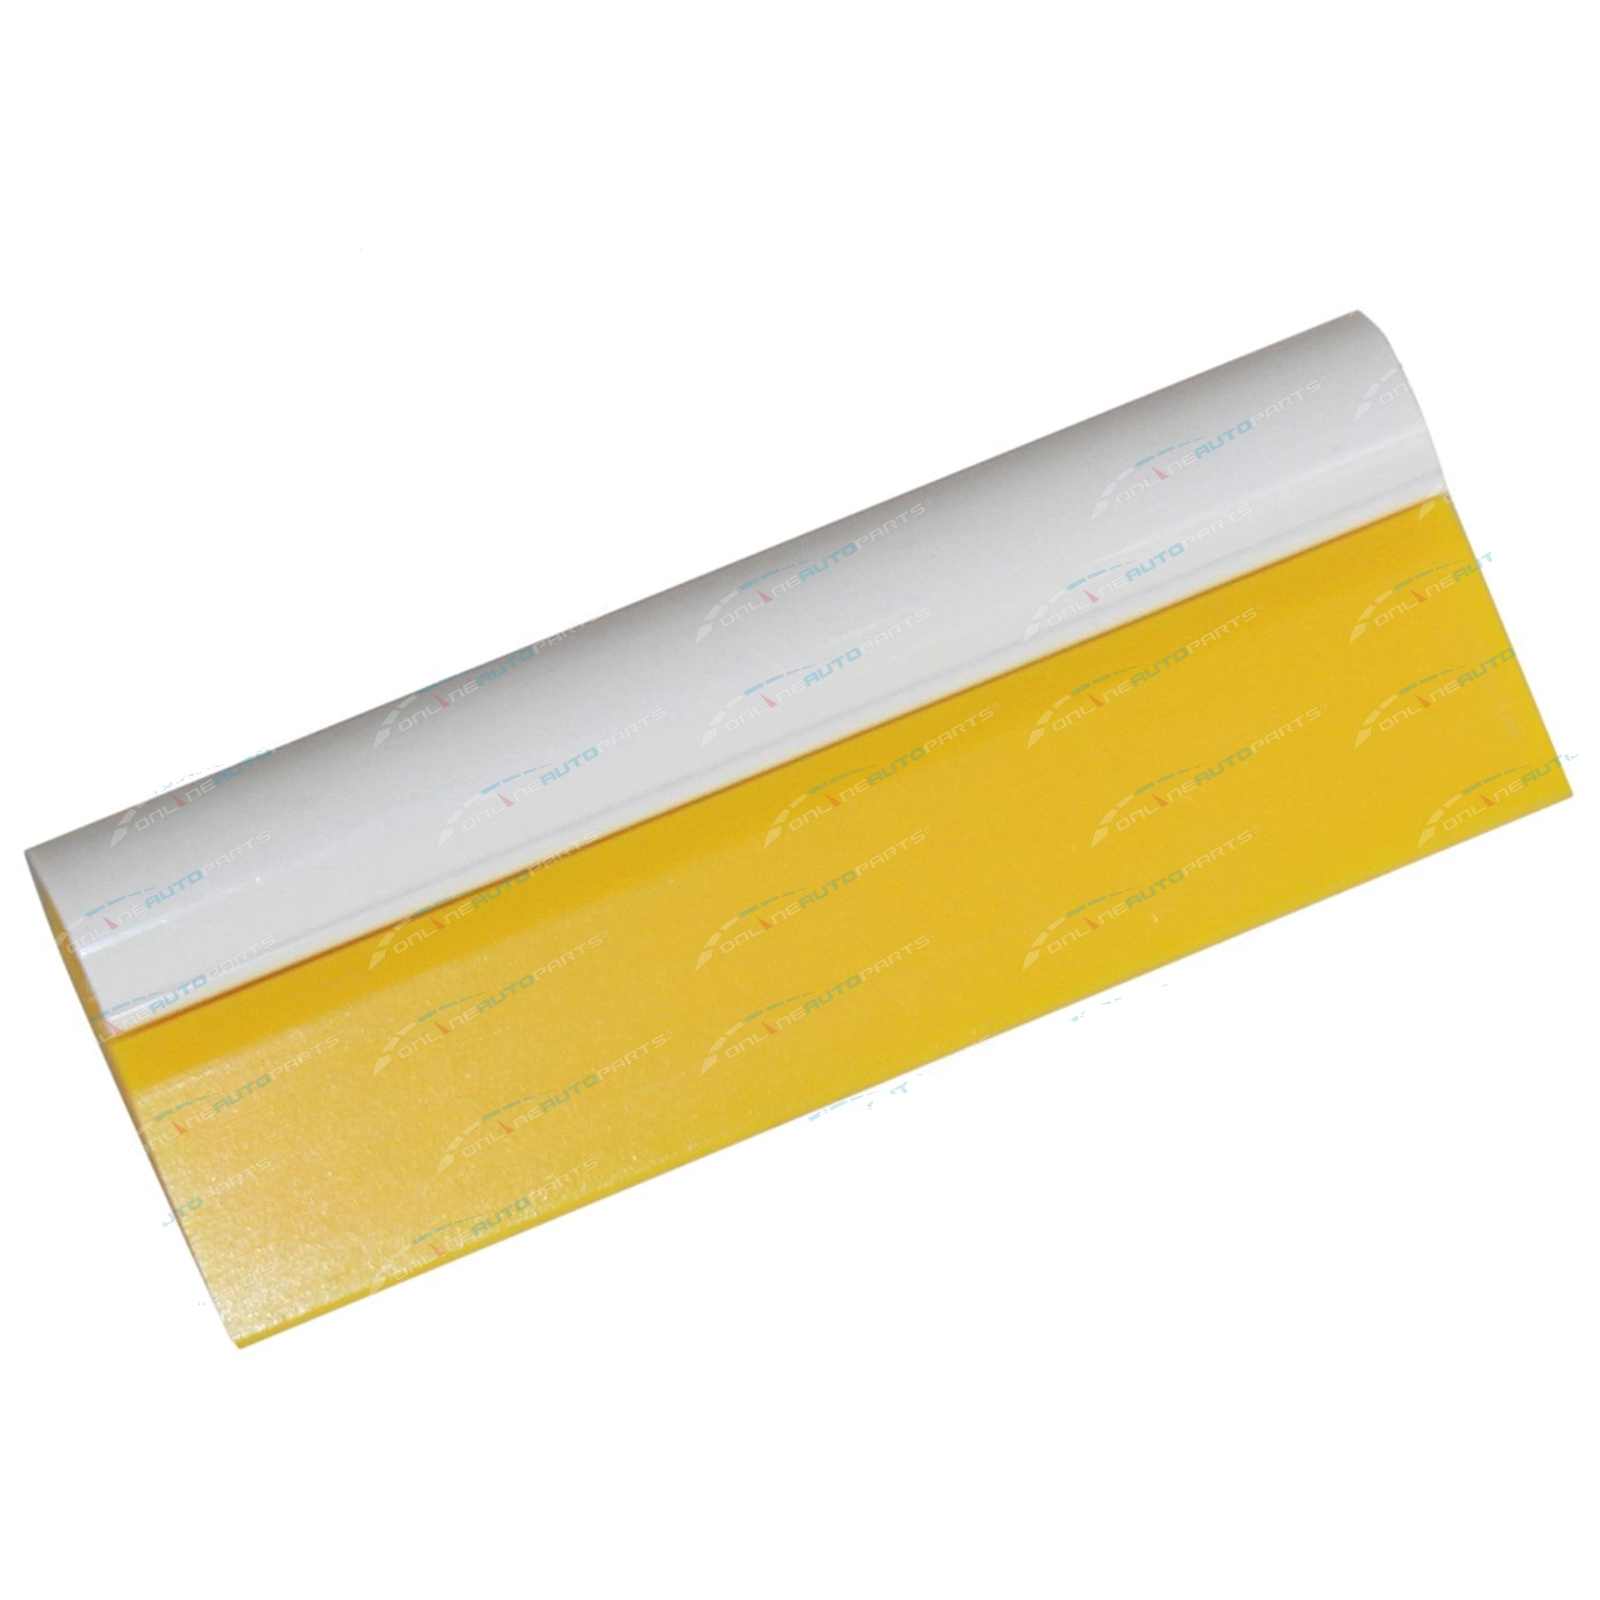 Yellow Turbo Squeegee Professional Window Tint Film Tool Application Squeegy New